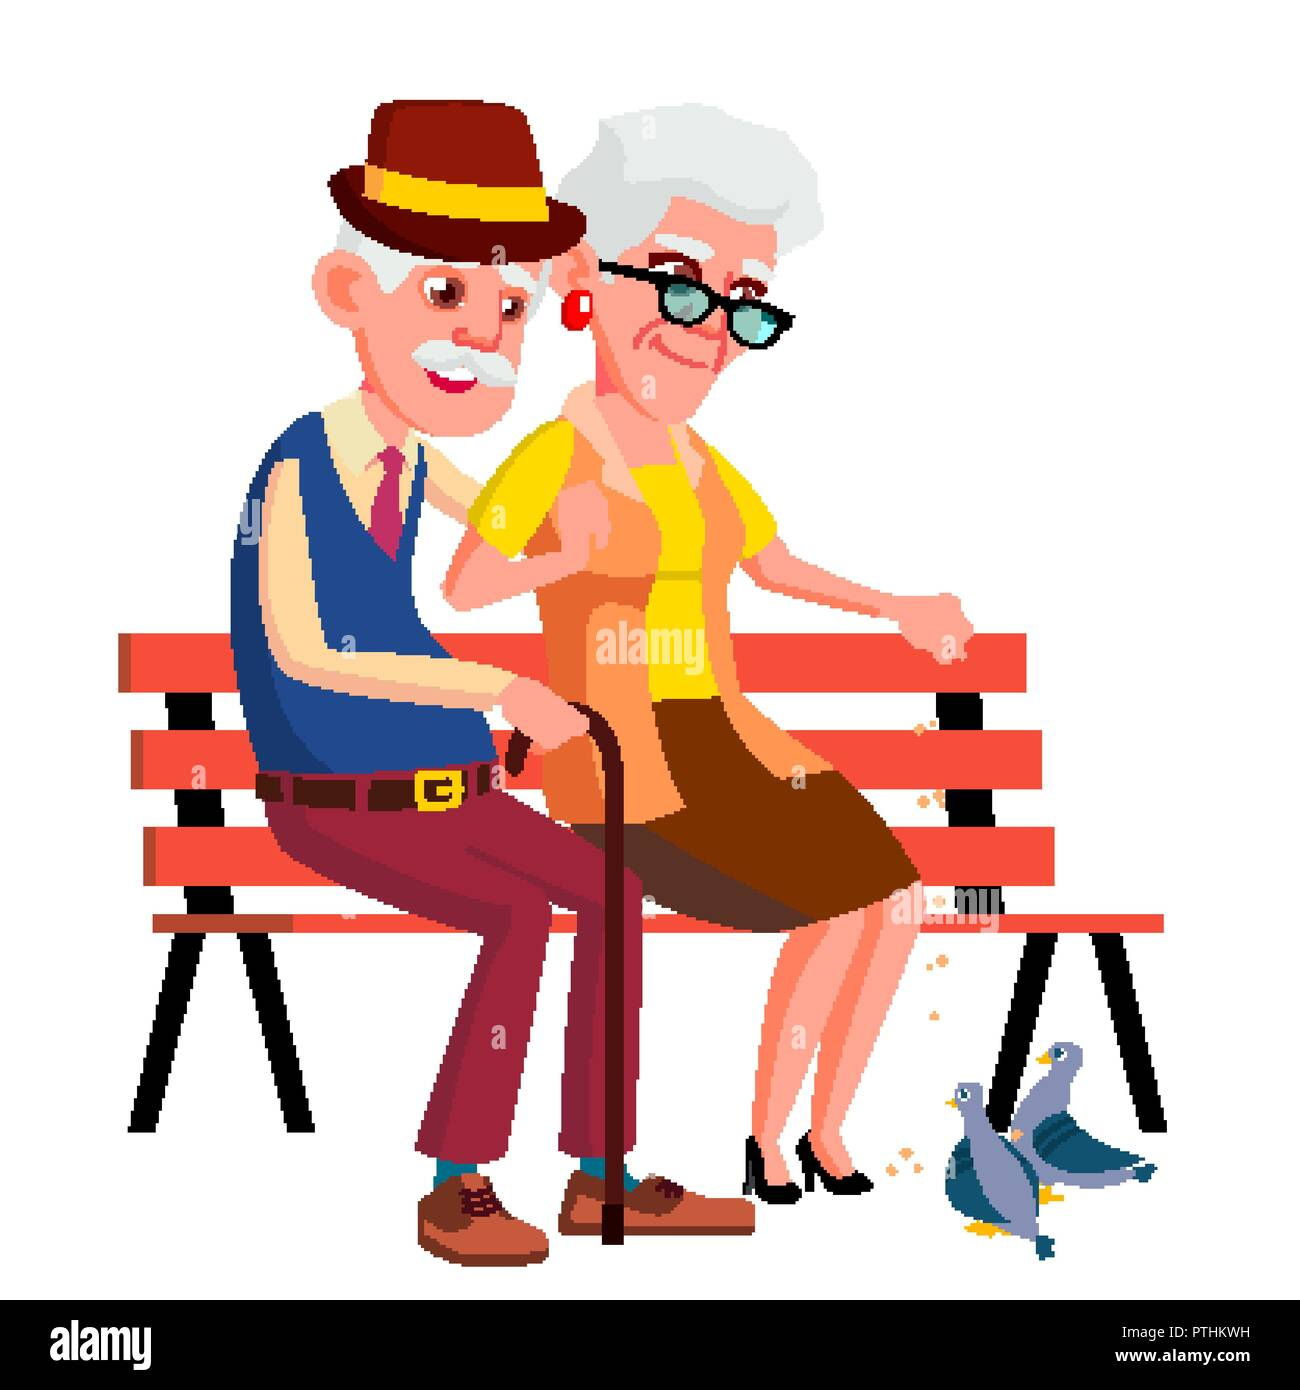 7ad3788dc95a2 Man Sit Bench Cut Out Stock Images   Pictures - Alamy